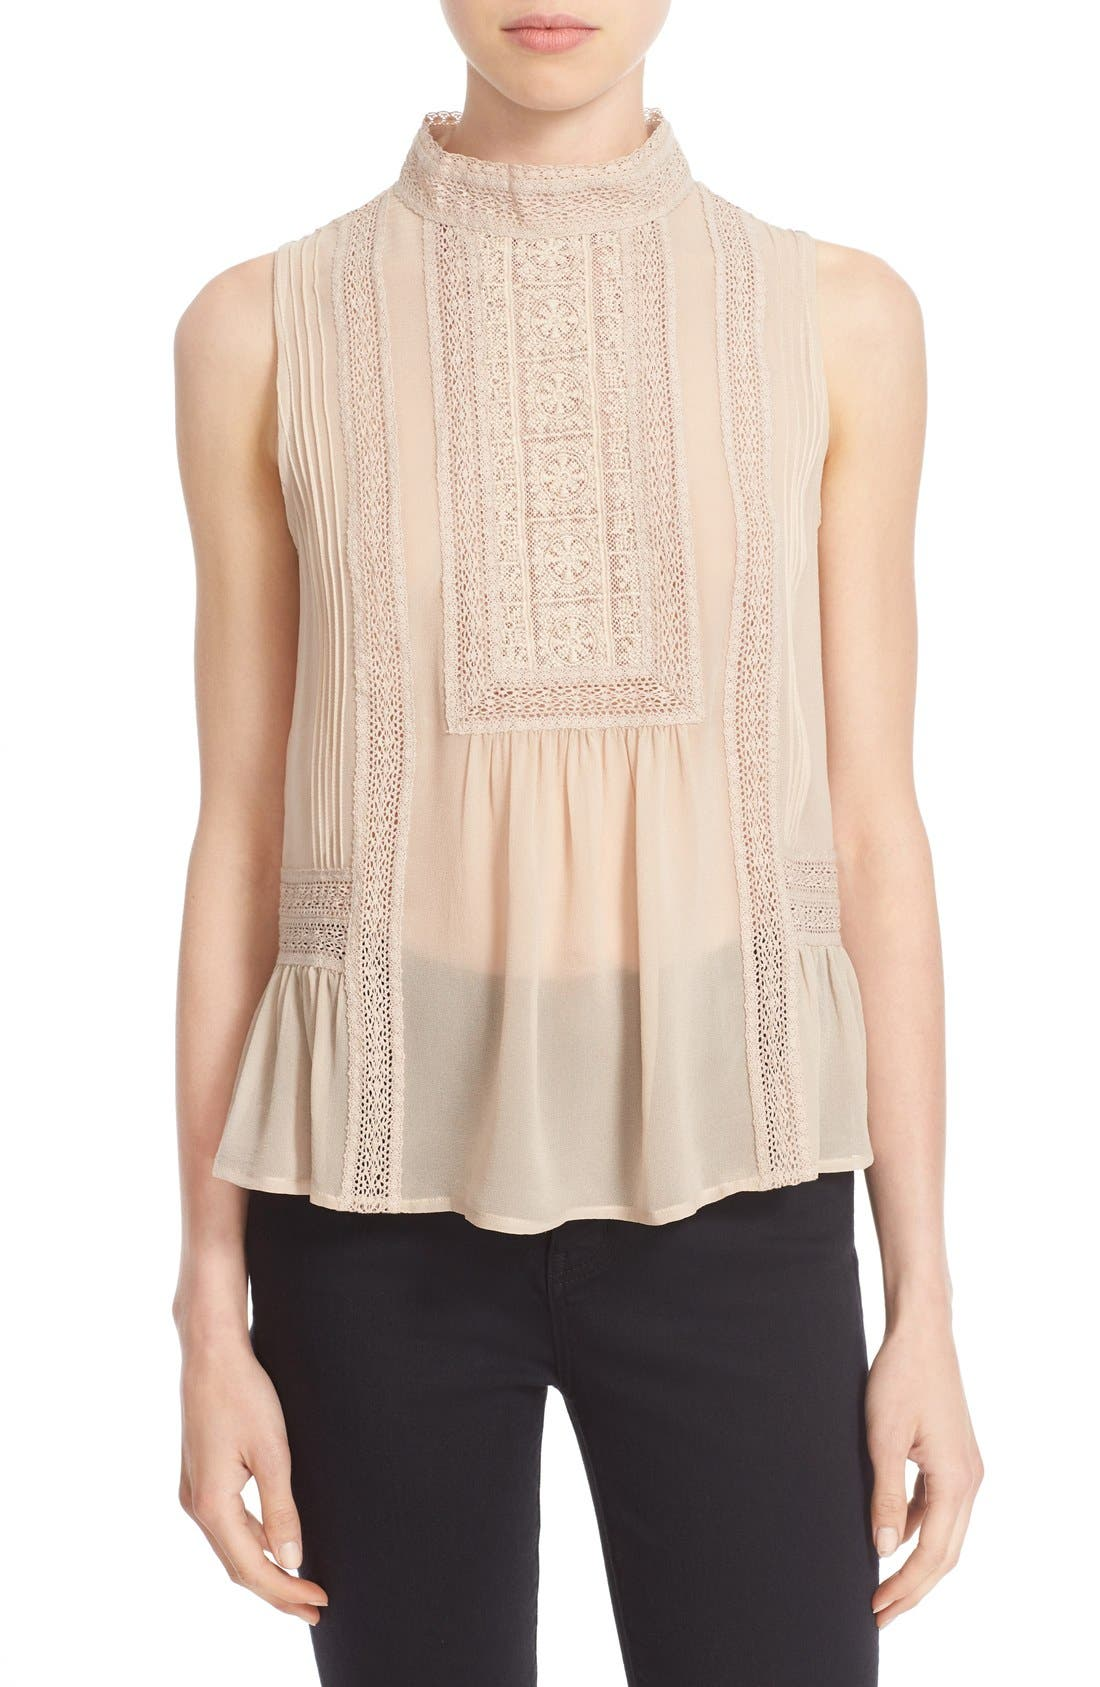 Alternate Image 1 Selected - Joie Lace Trim Sleeveless Silk Blouse